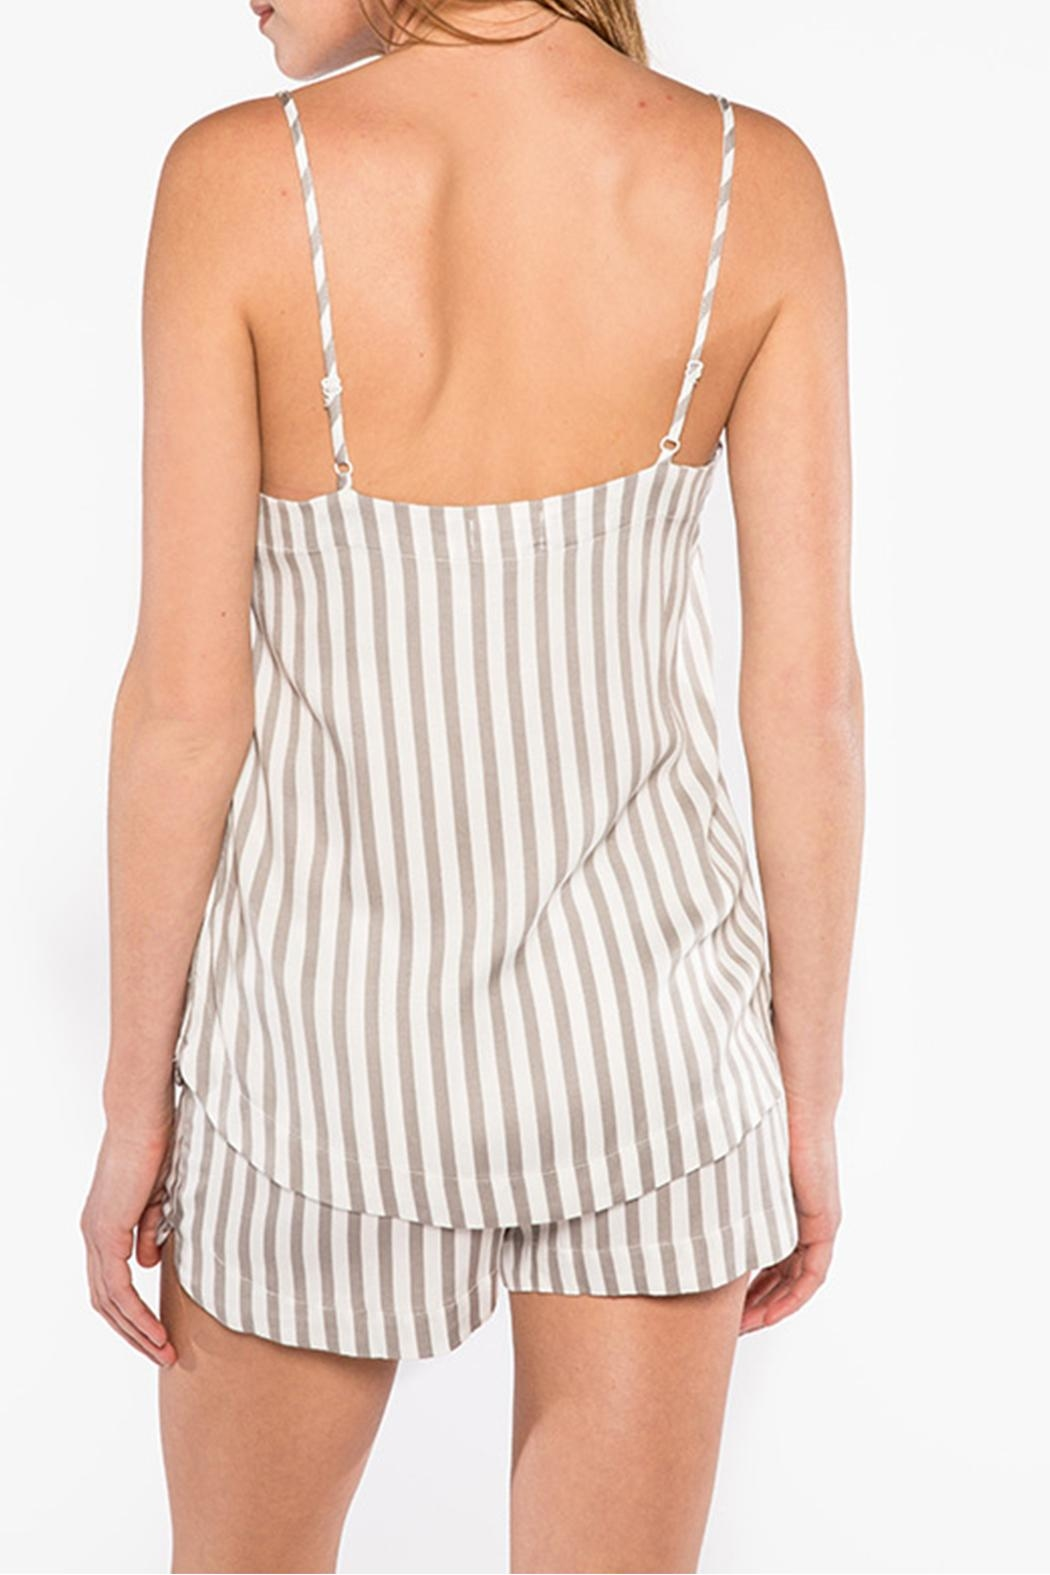 PJ Salvage Striped Cami - Front Full Image